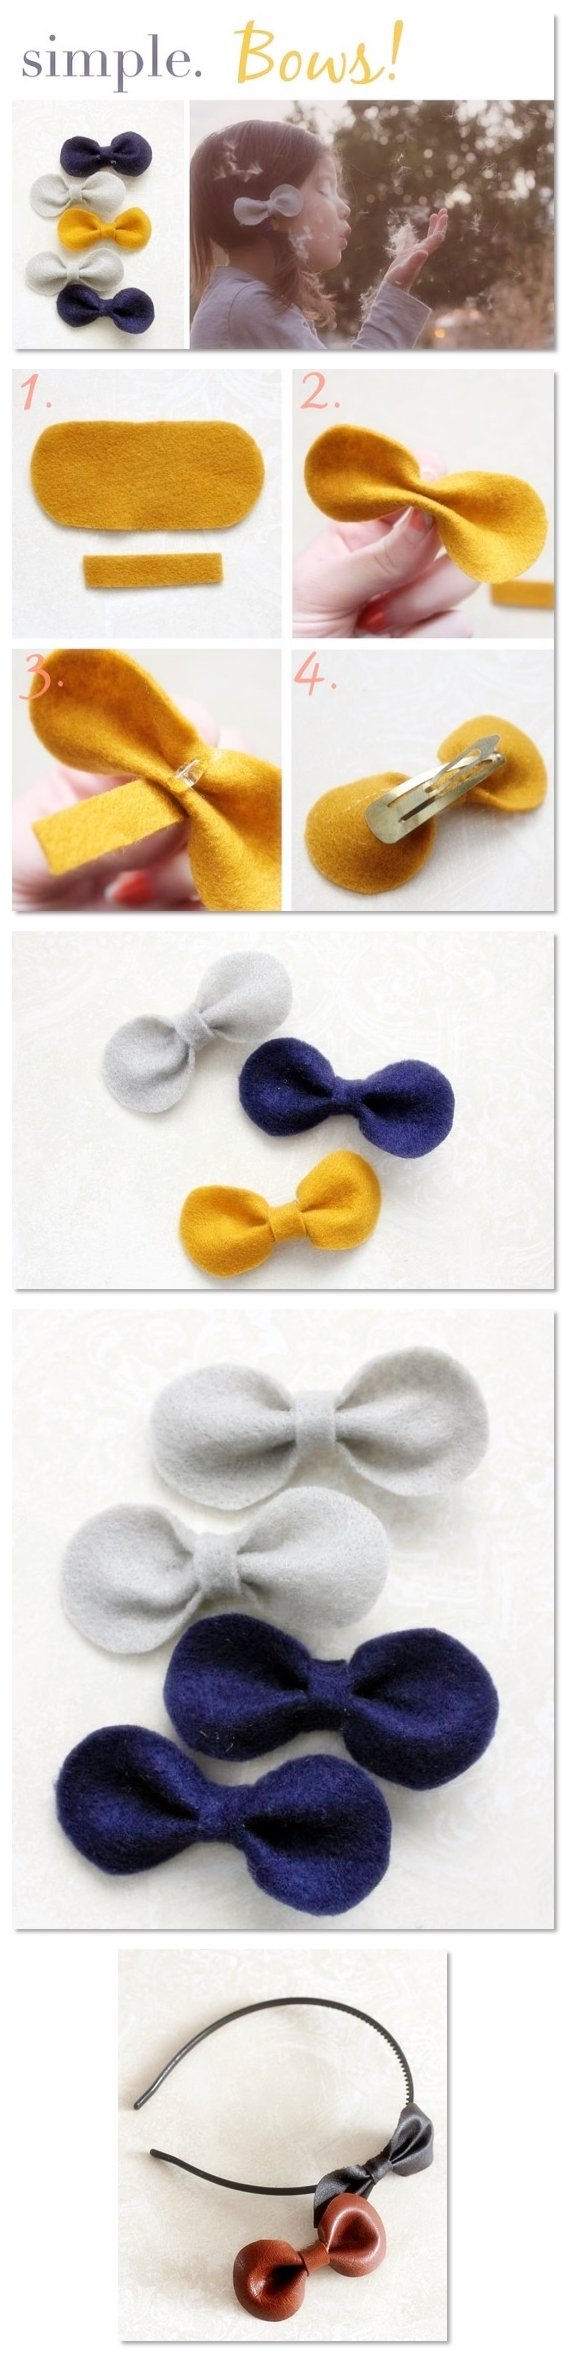 How To Make Hand Made Felt Bows DIY Step By Tutorial Instruction